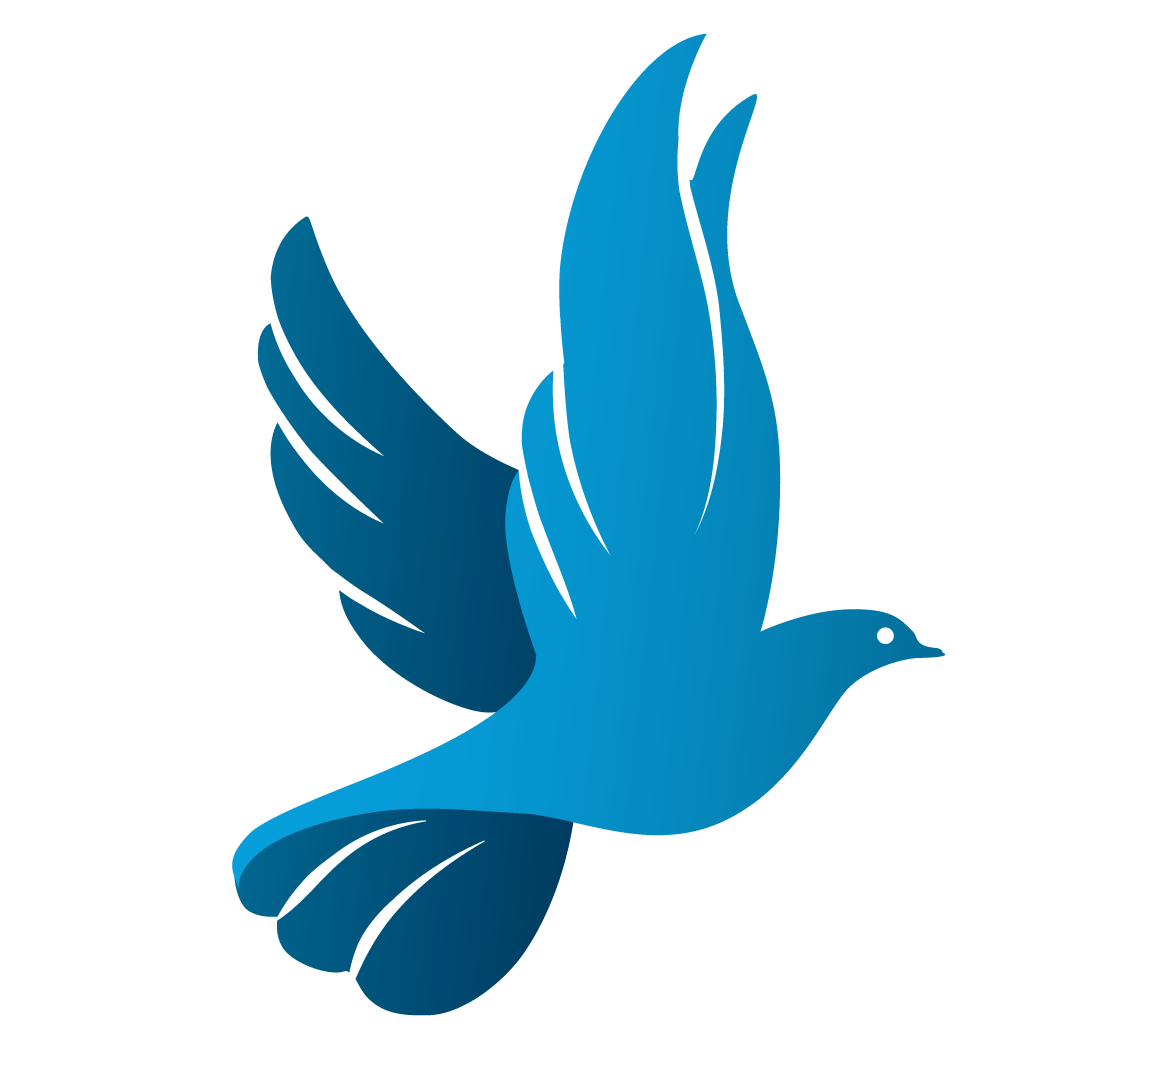 Blue dove with sun clipart jpg library library Afbeeldingsresultaat voor church dove logo design | nkhazie ... jpg library library